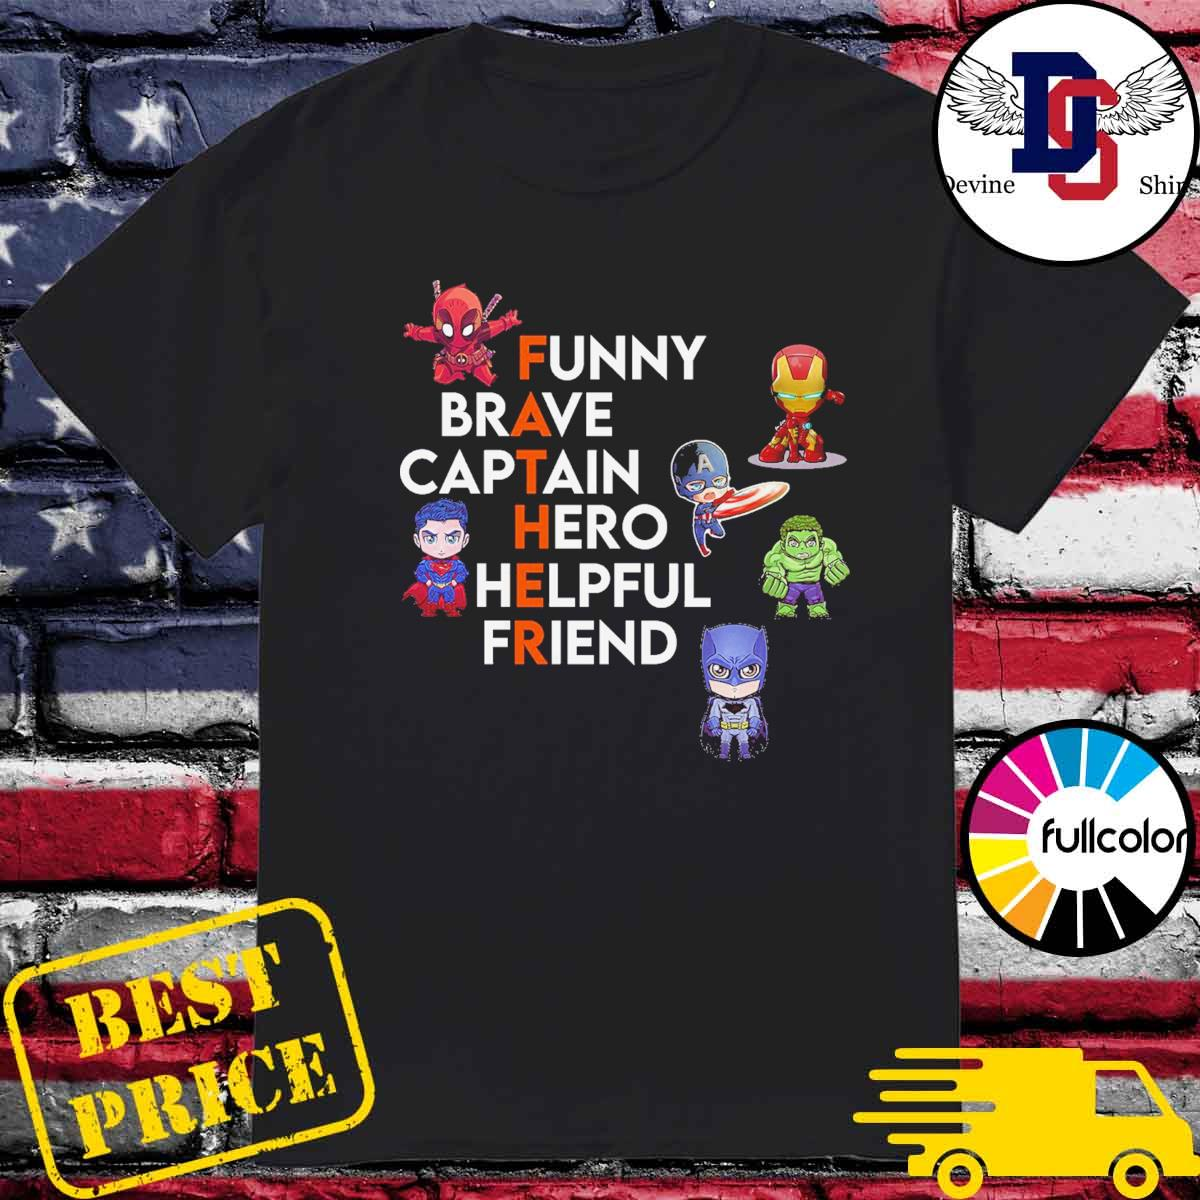 Father Superheroes Funny Brave Captain Hero Helpful Friend shirt